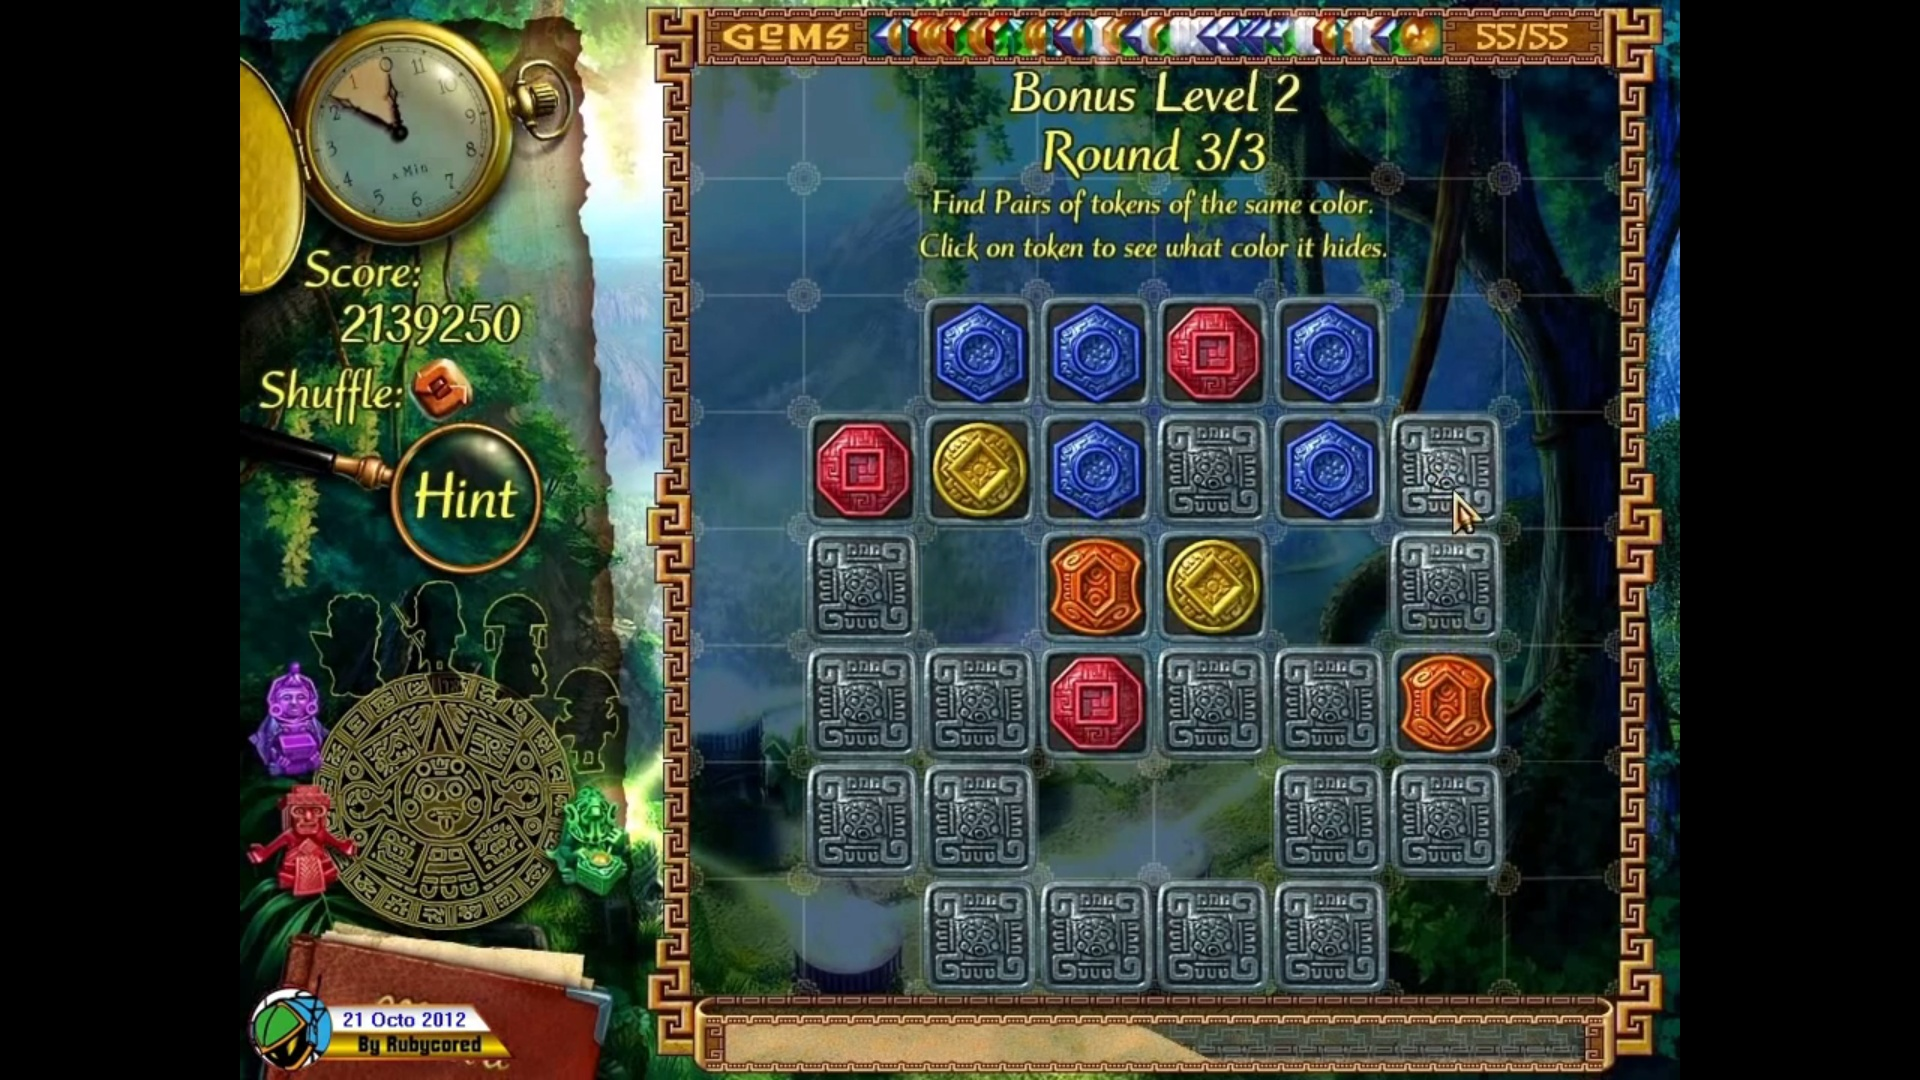 The-Treasures-of-Montezuma-Screenshot-01.jpg